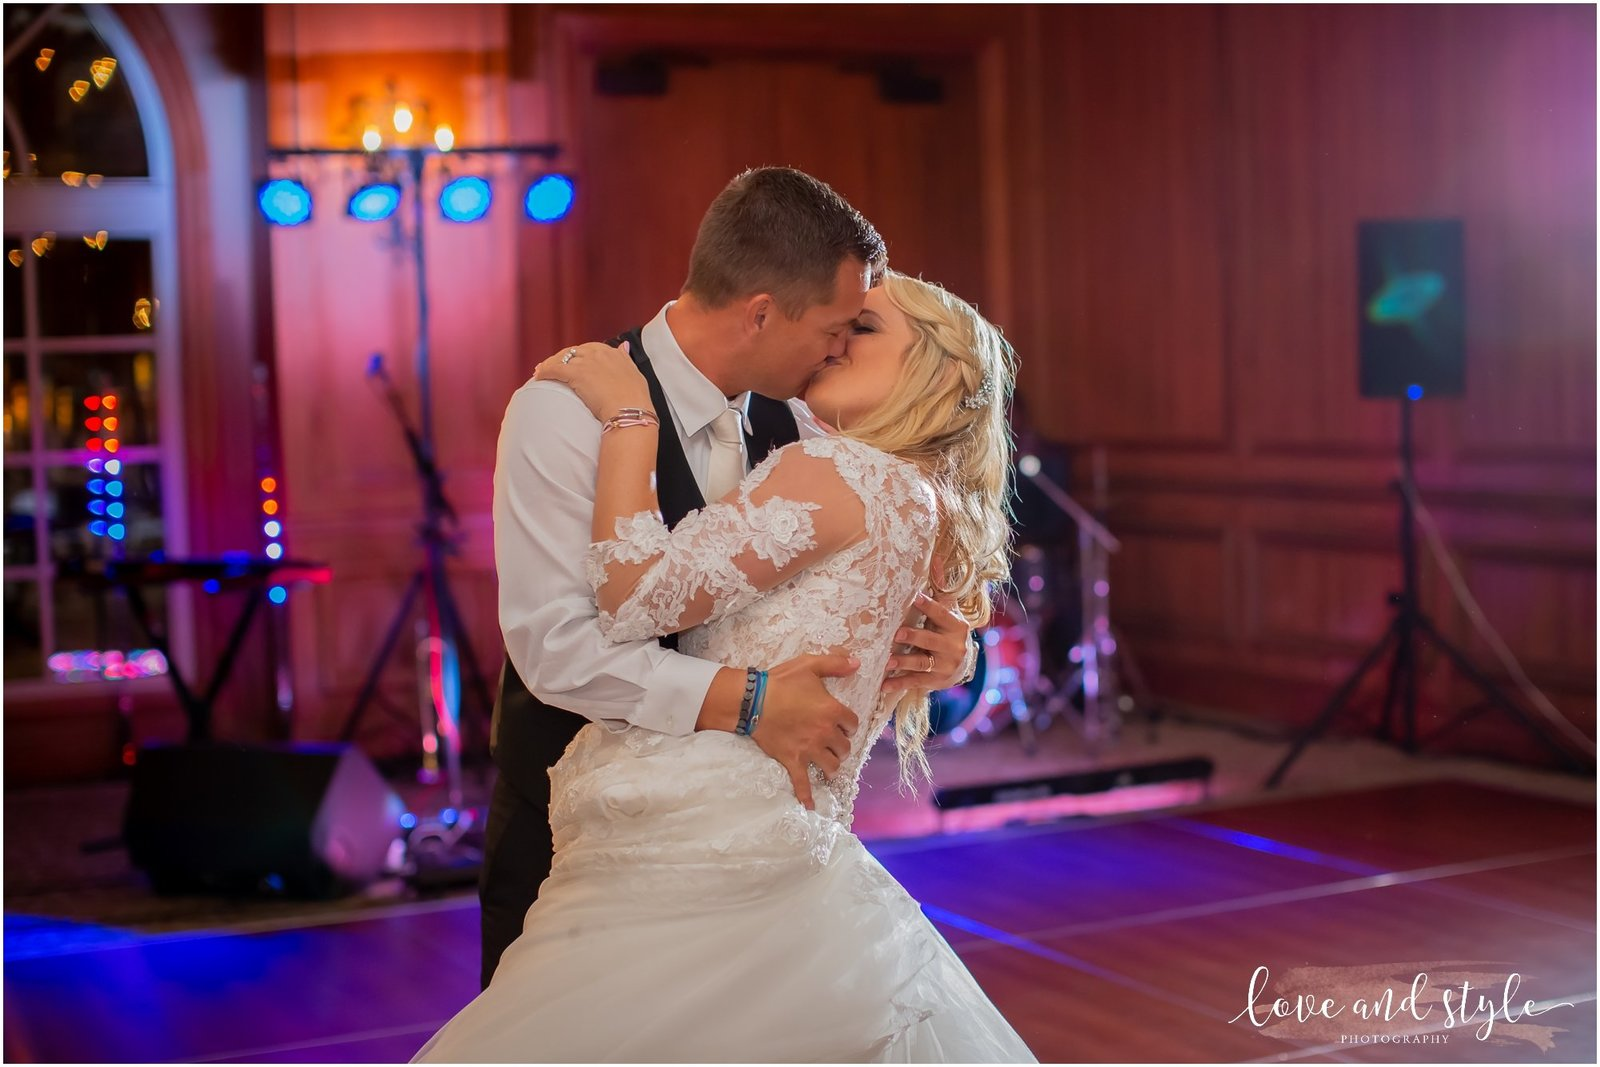 Bride and Groom's first dance at The Ritz Carlton, Sarasota